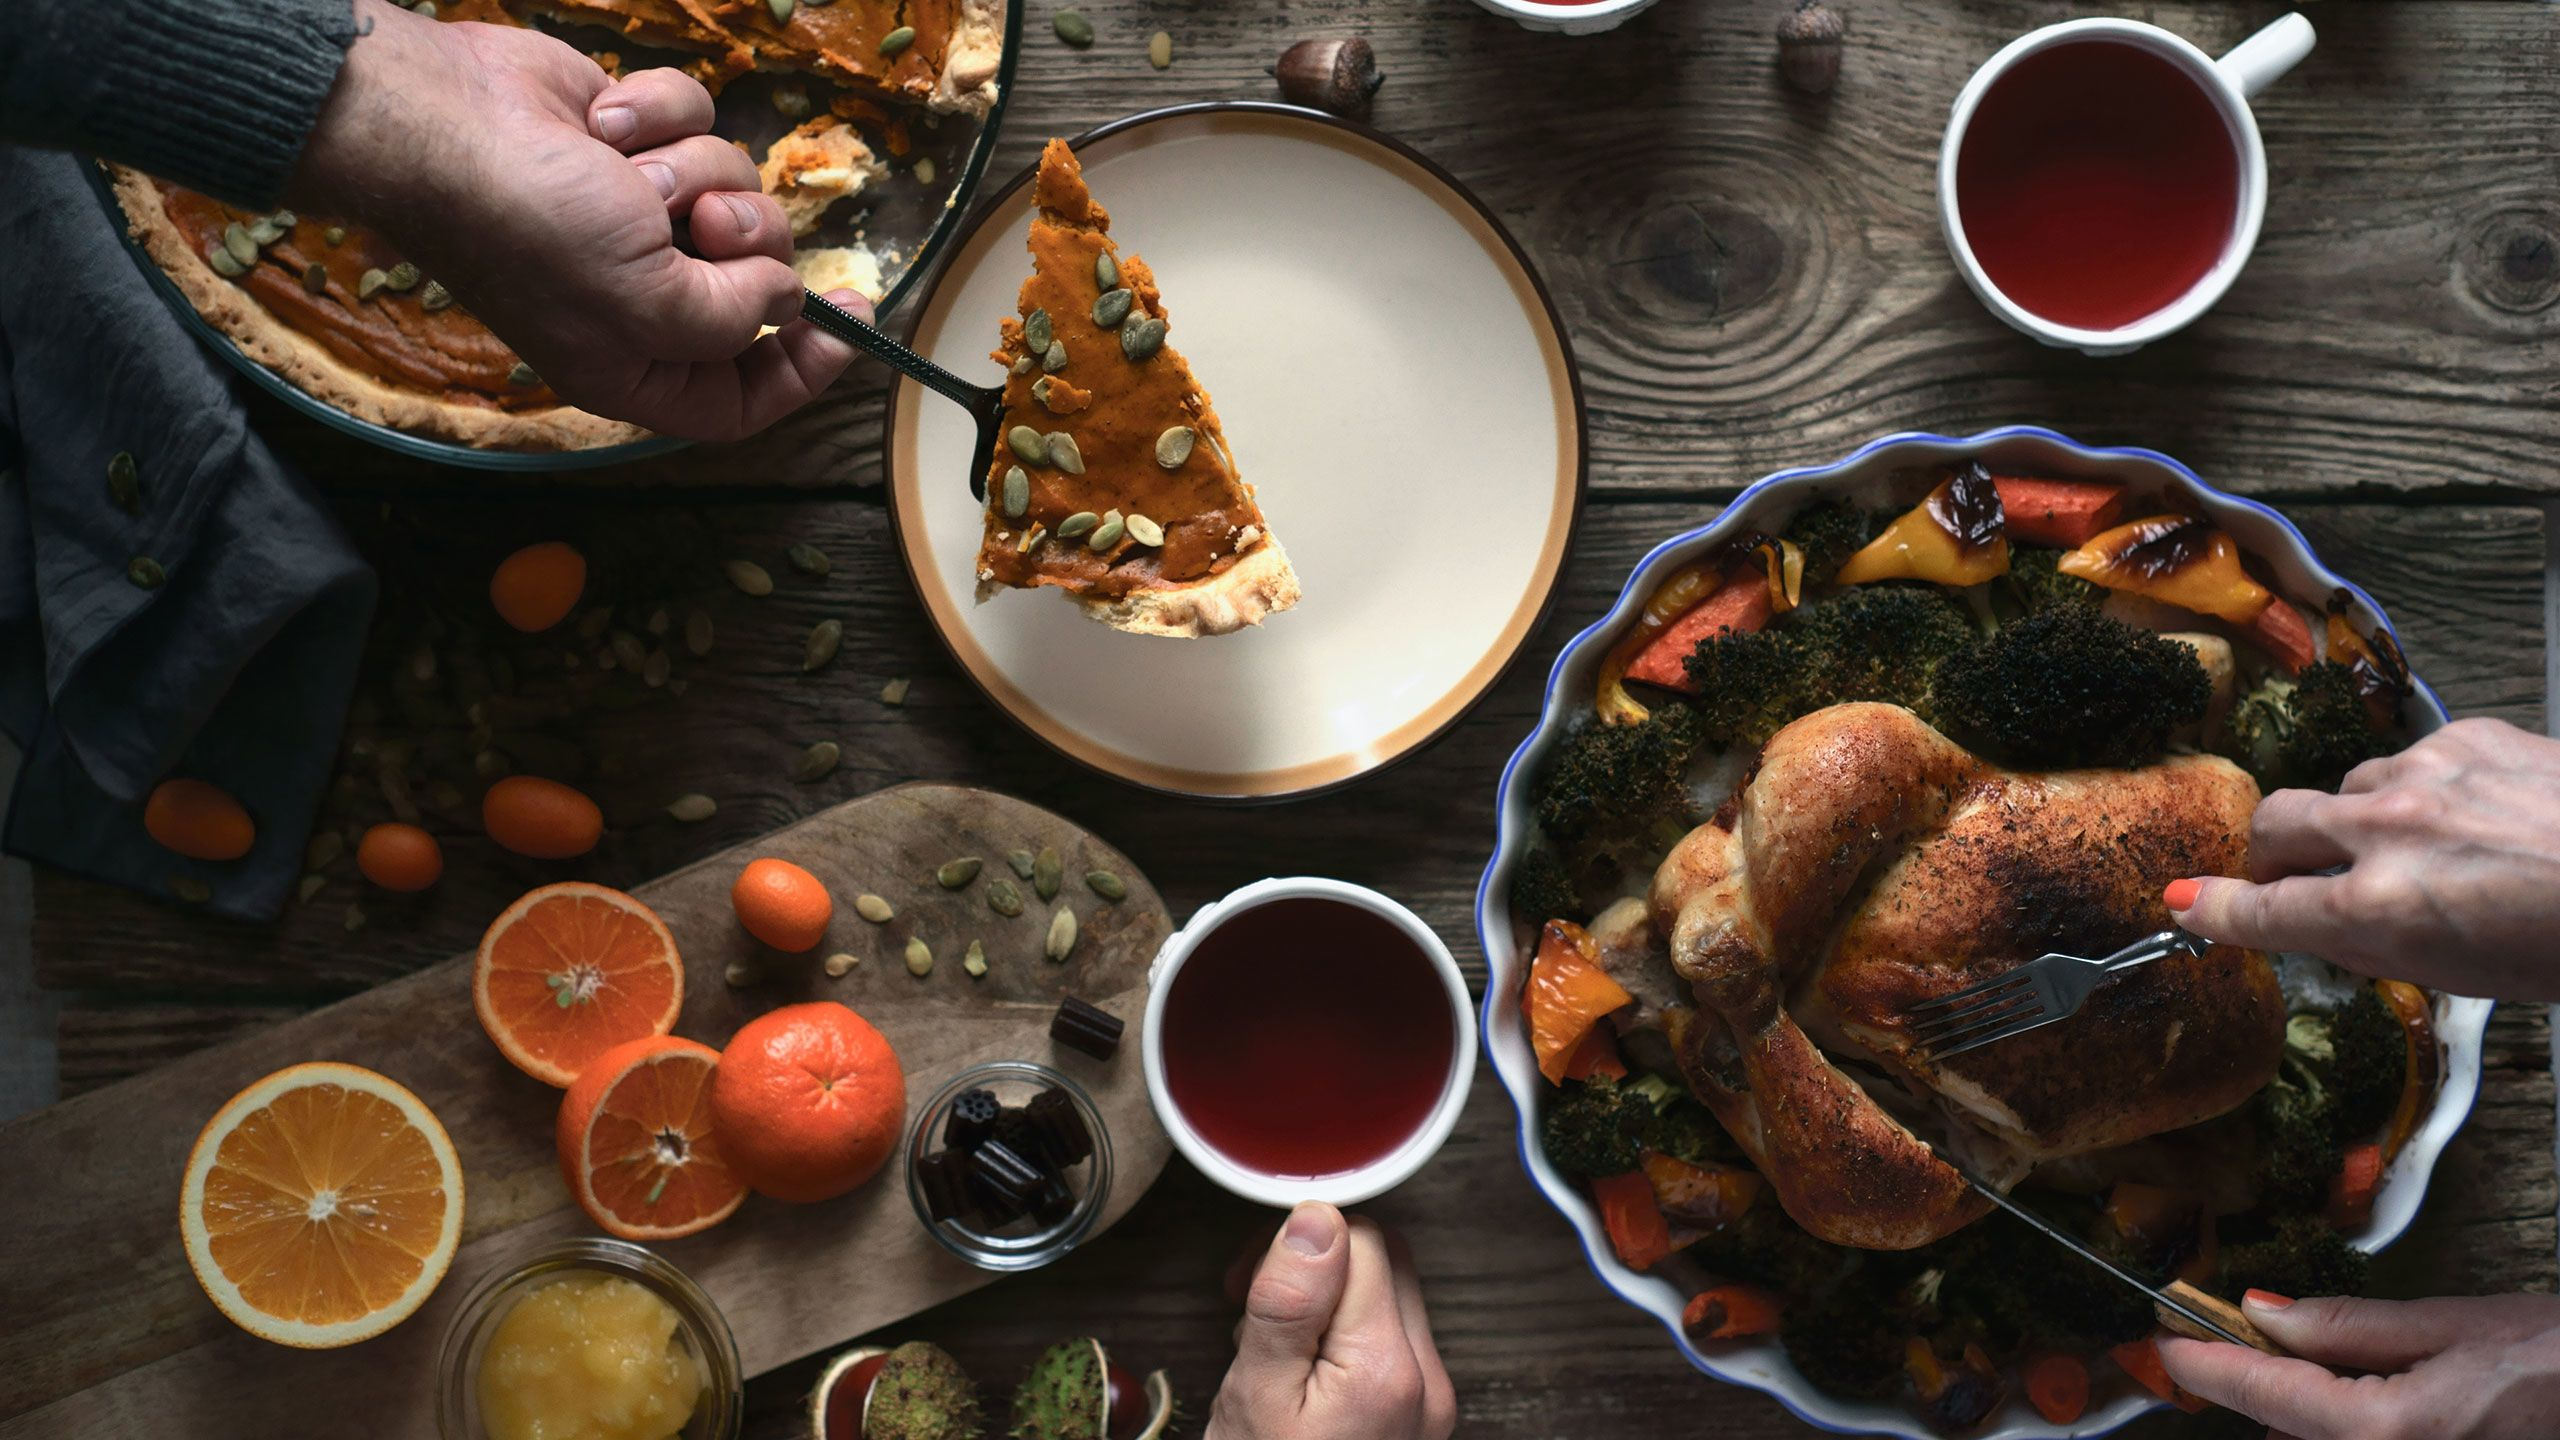 Healthy Holiday: 8 Holiday Side Dishes That Won't Derail Your Diet